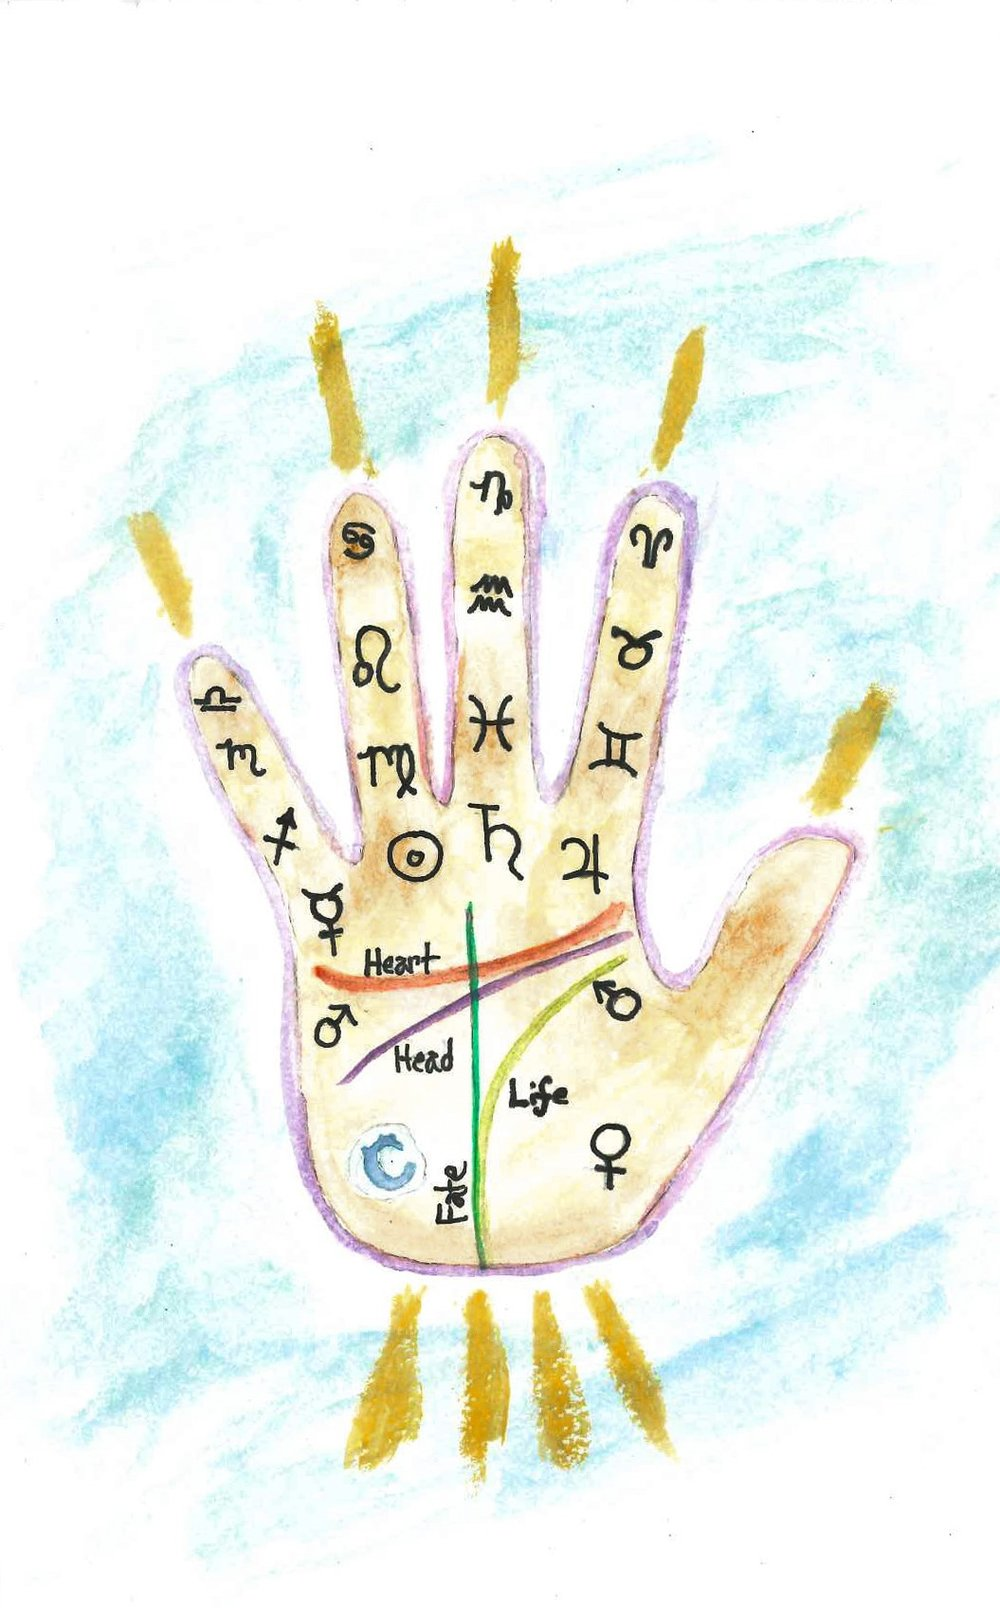 Introduction to Palmistry - It is important to remember that our right palm is a reflection of our current life circumstances. Often the right palm lines will change over months and years.Major Lines // Right PalmLife Line- This line represents your energy levels, spiritual stability and sense of security in the life path you are on.Fate Line- This line is not always present. It reflects your sense of self and reaching your purpose in life.Heart Line- This line represents how you form relationships and express your inner emotions.Head Line- This line represents how you process information and your mental outlook on the world.-Press and hold image on mobile to download, or right click on desktop to save-